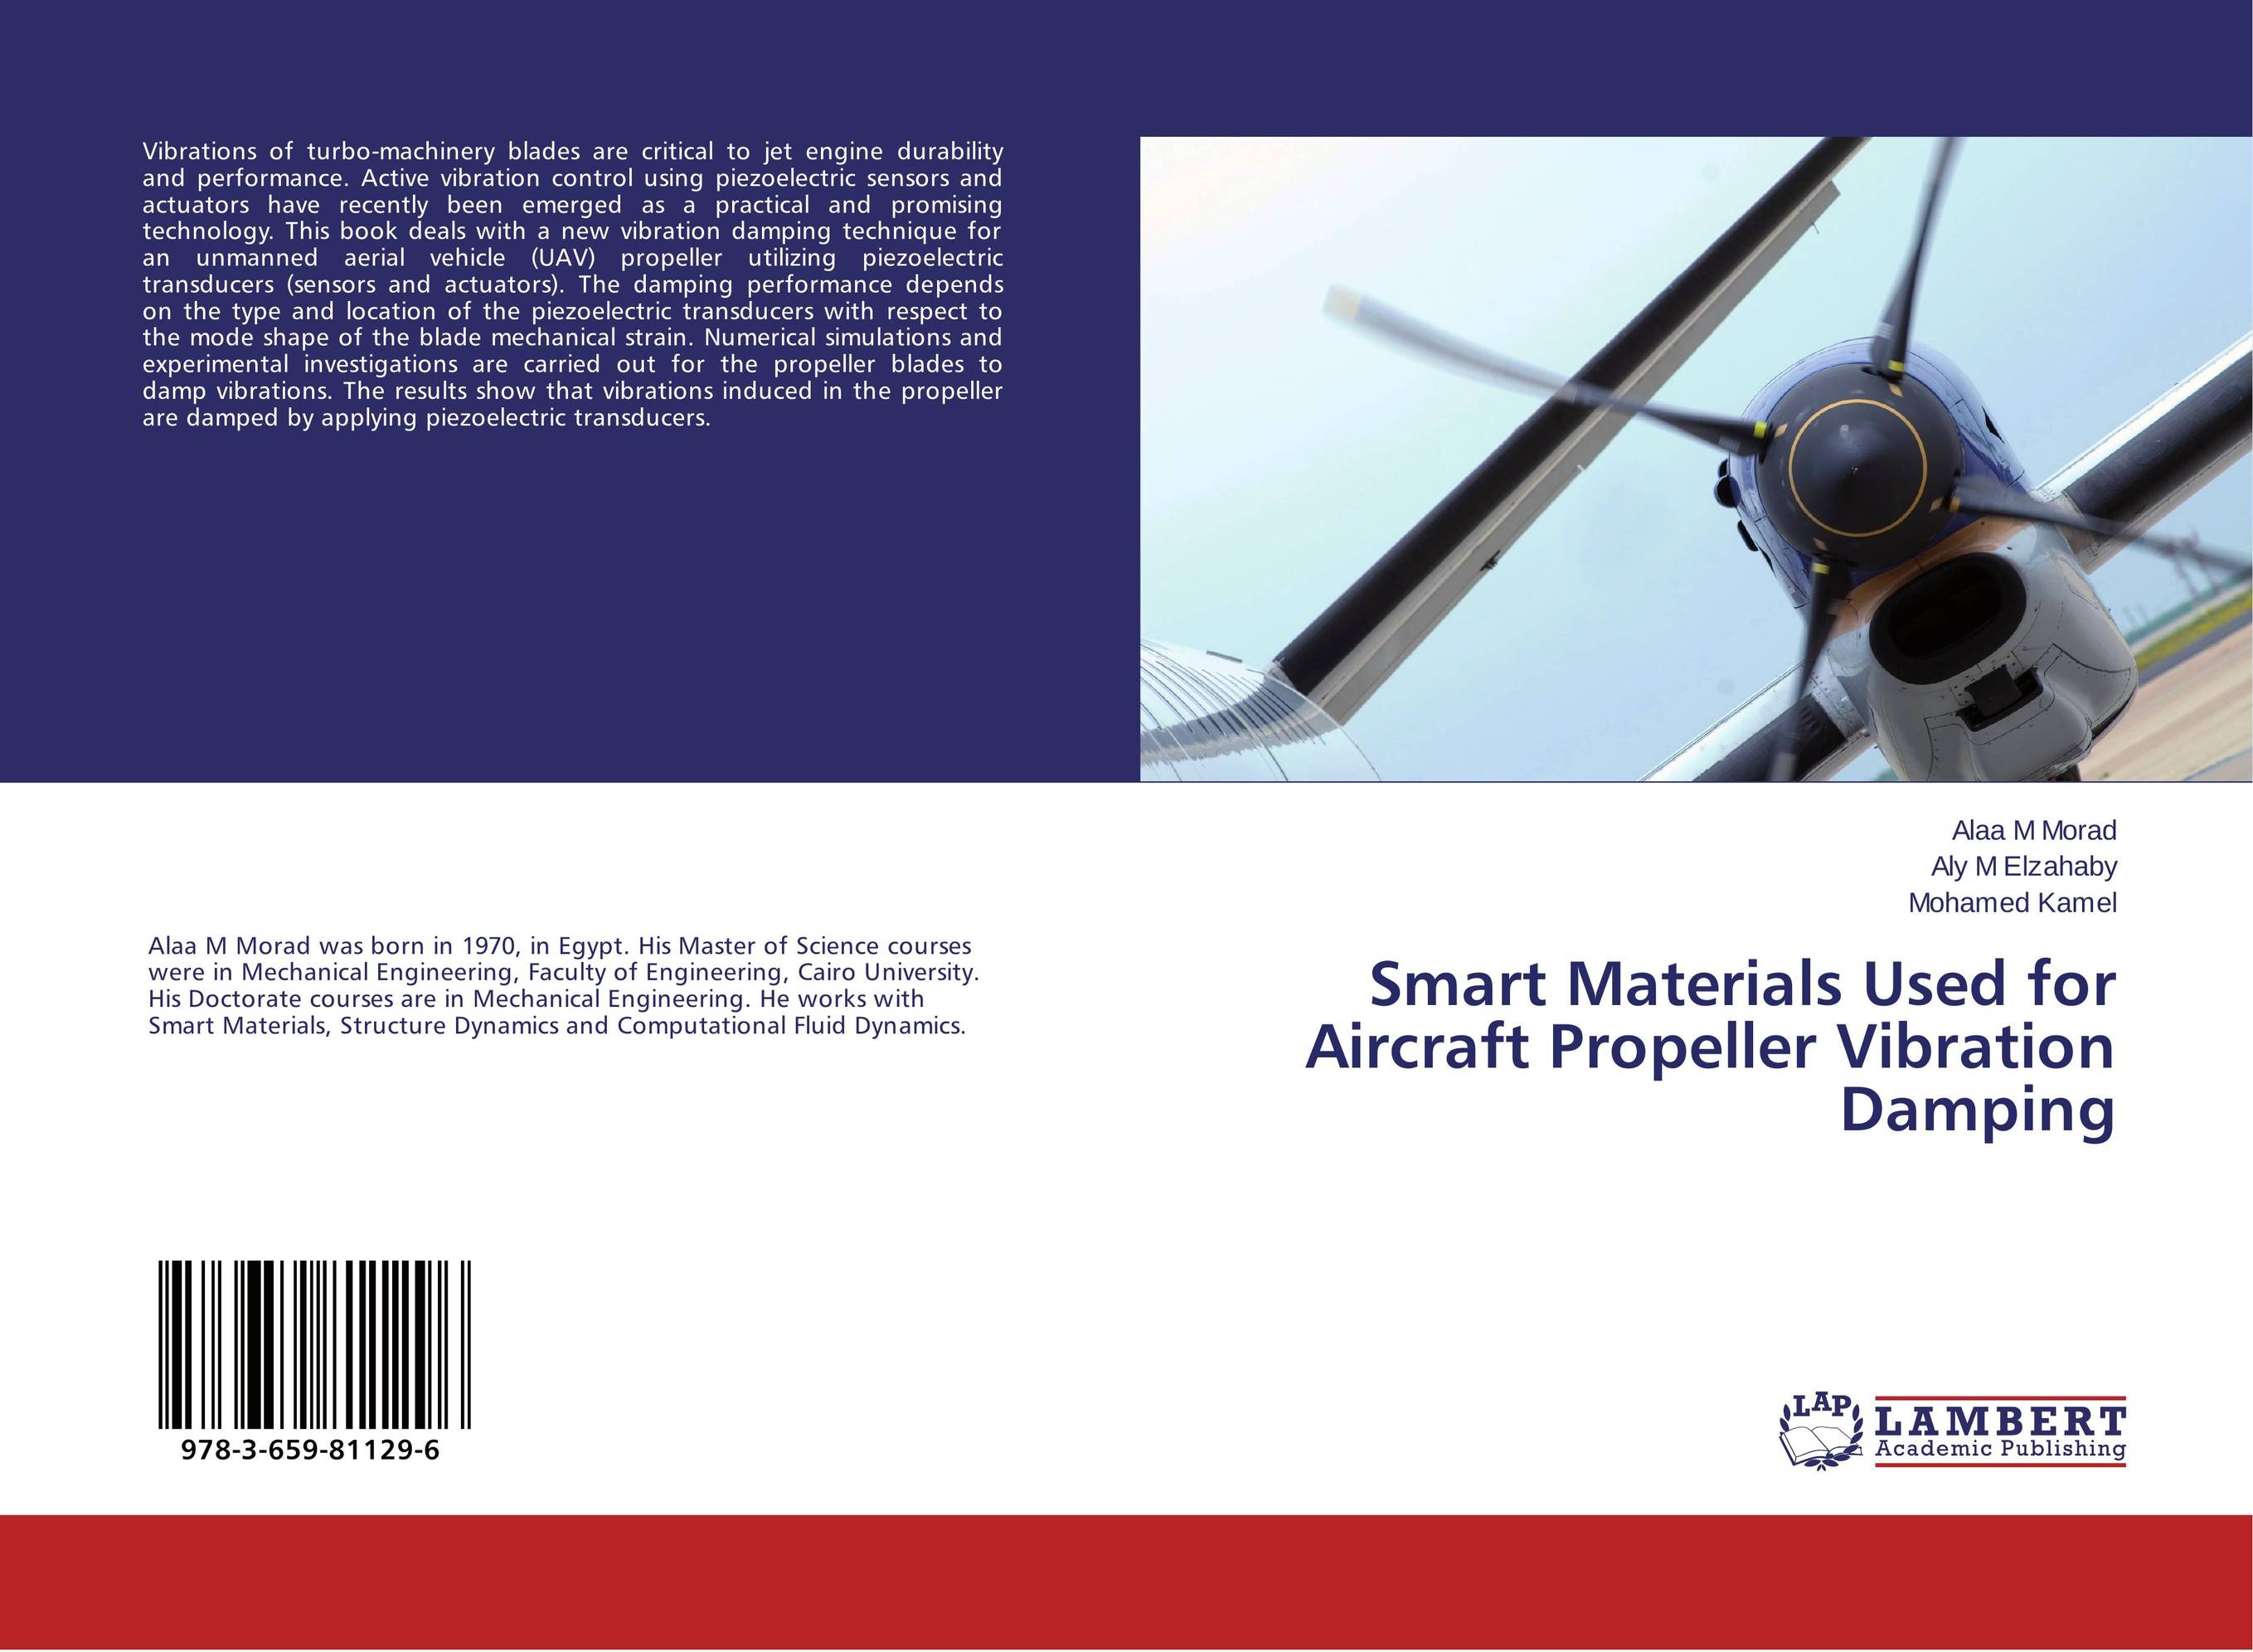 Smart Materials Used for Aircraft Propeller Vibration Damping